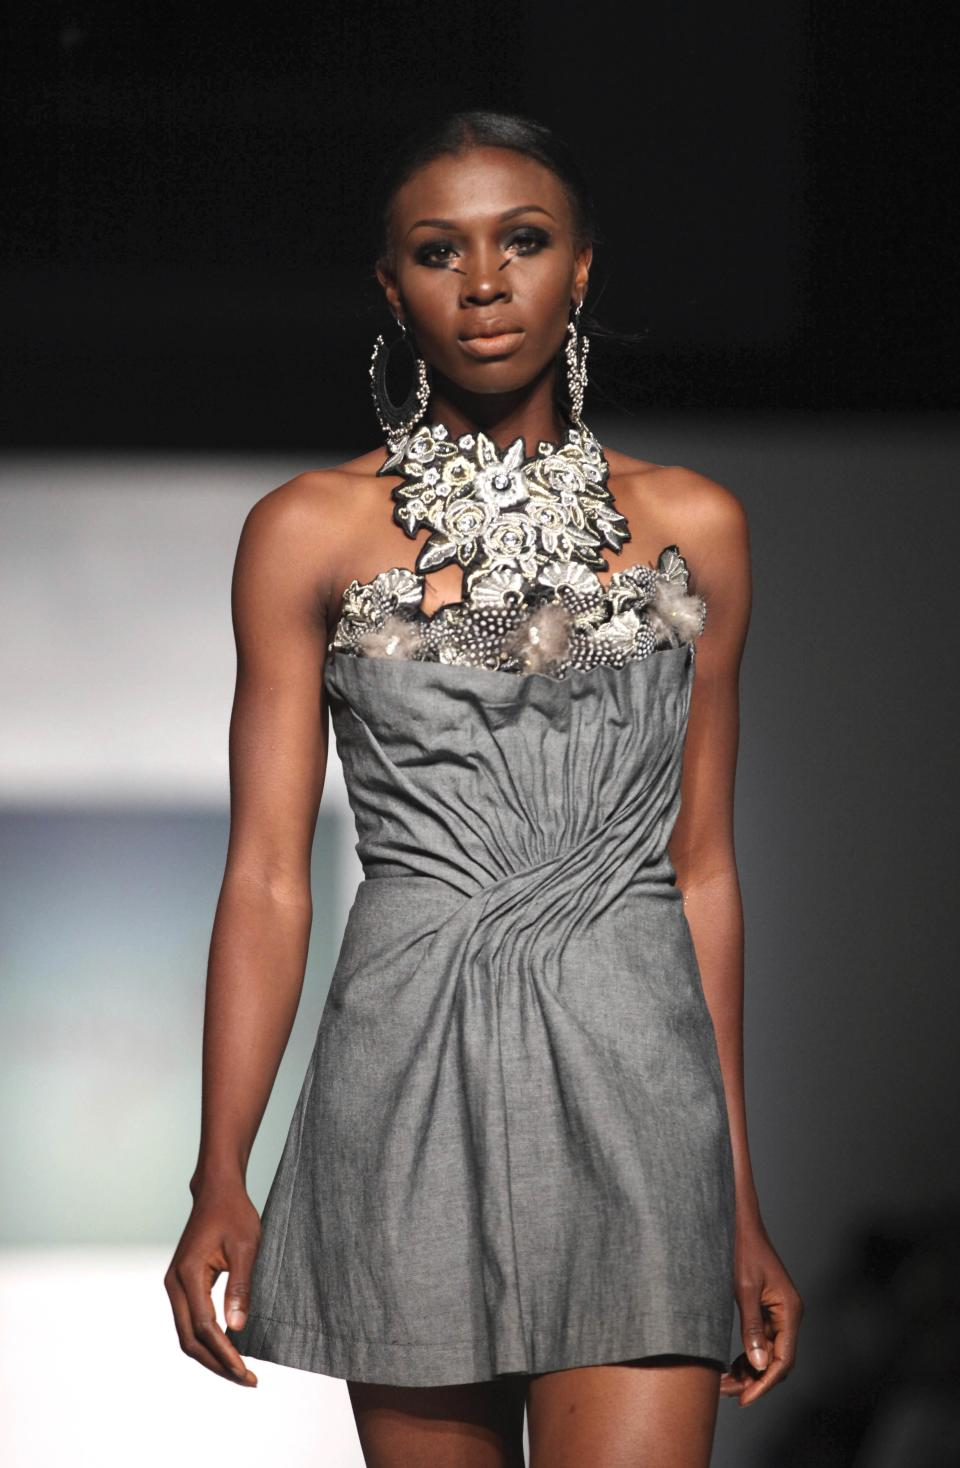 A model displays an outfit by designer Sunny Rose, during the MTN Fashion and Design Week in Lagos, Nigeria, Saturday, Oct. 27, 2012. (AP Photo/Sunday Alamba)